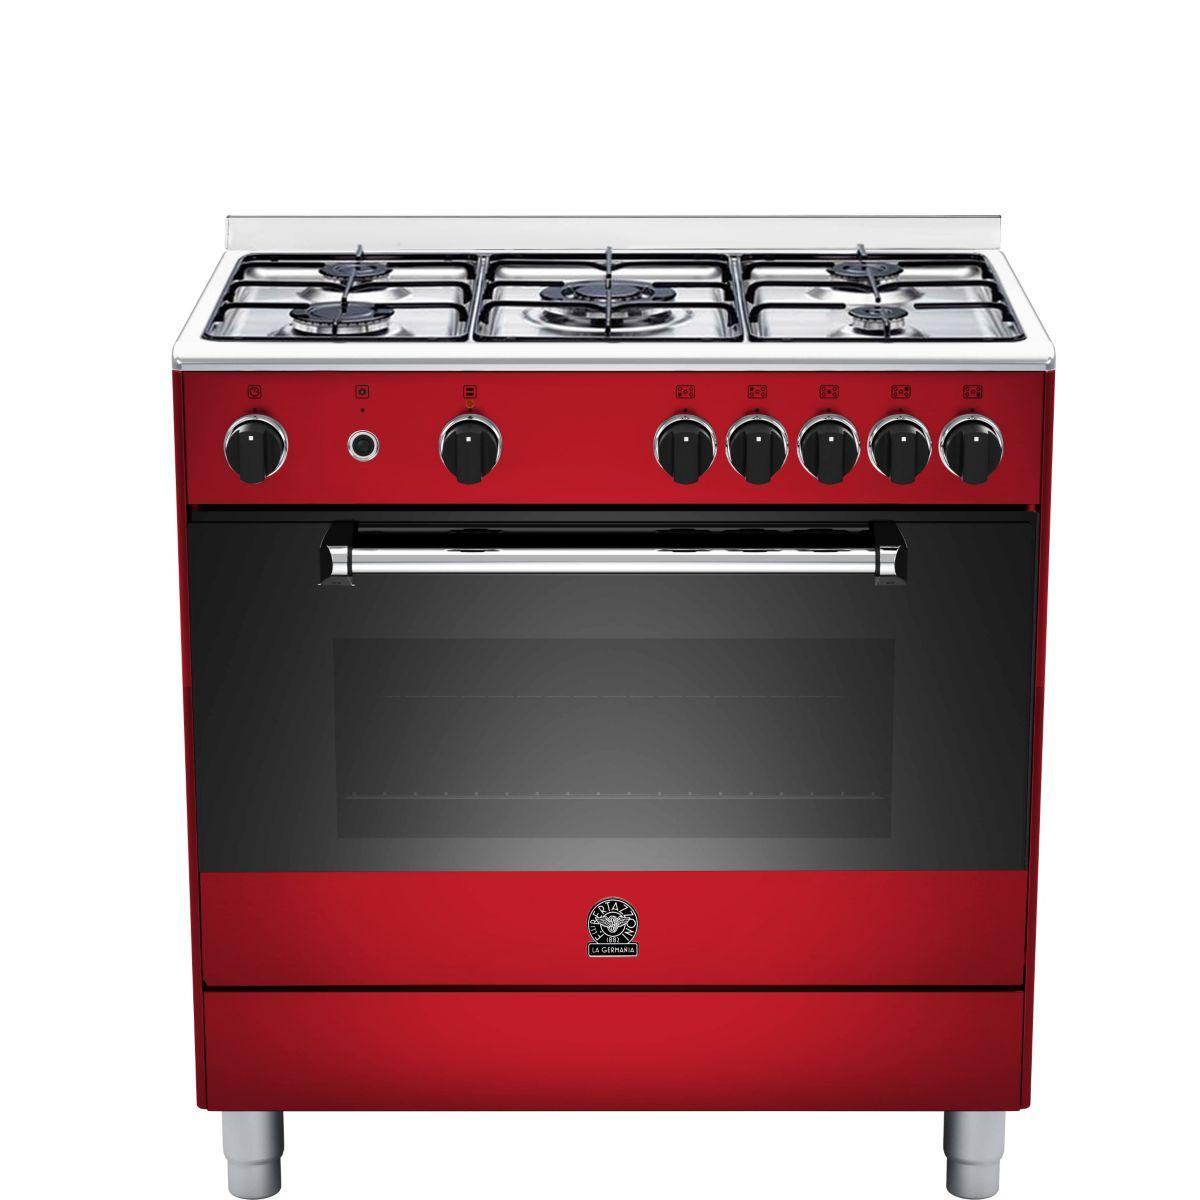 Piano de cuisson gaz bertazzoni germania am85c21dvi (photo)